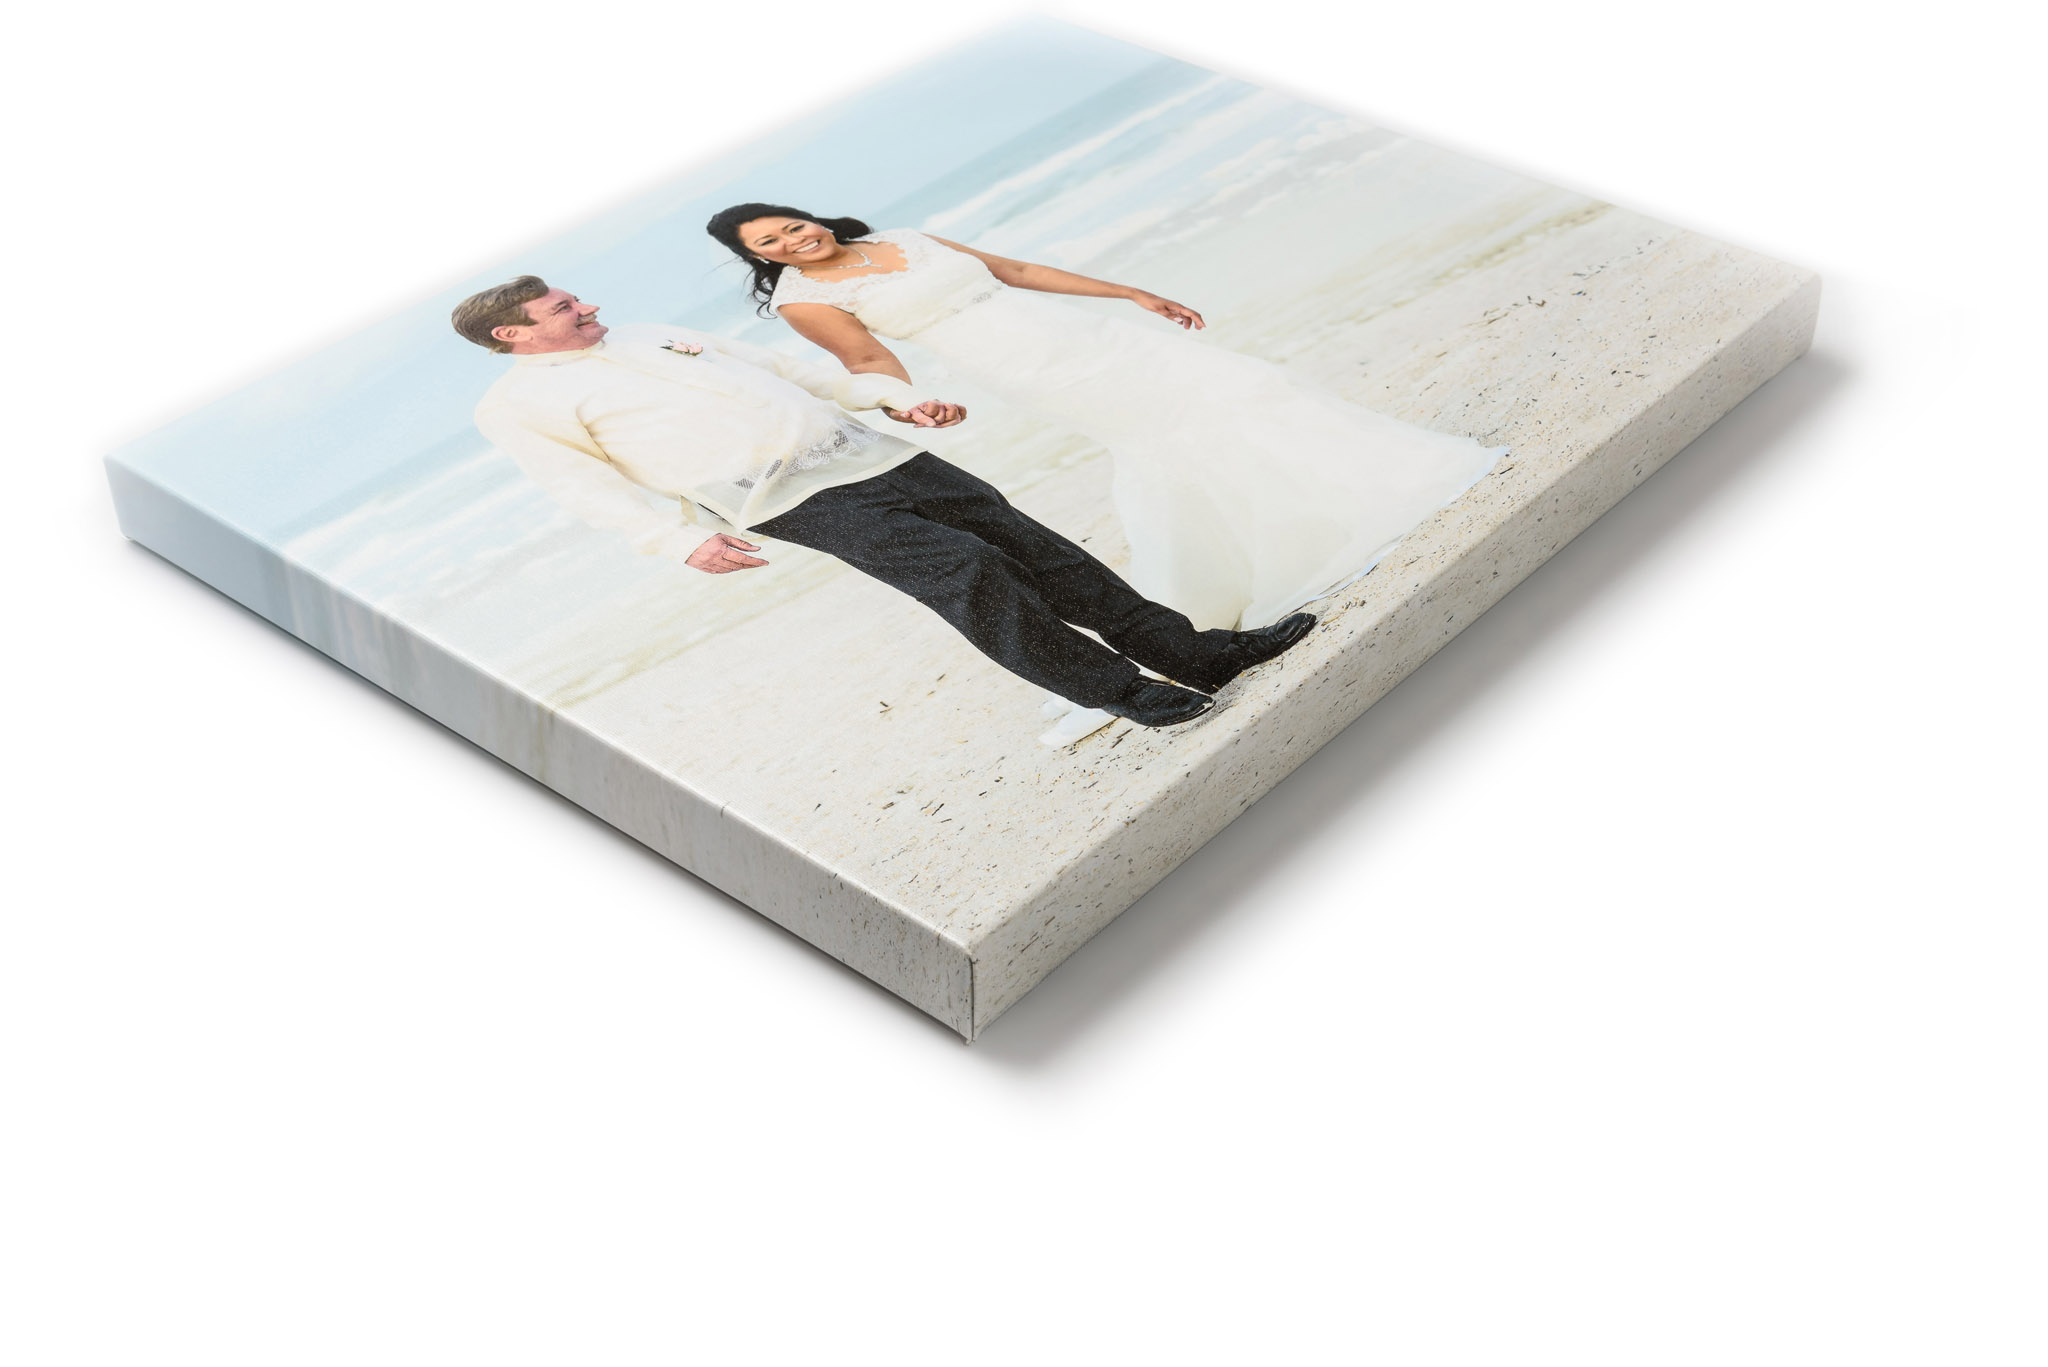 CANVAS GALLERY WRAPS - The gallery wraps take a beautiful ink-on-canvas print and literally wrap it around a sturdy wooden stretcher frame for a contemporary look. For a more formal appearance, you can choose to have the edges printed in black. This not only helps the canvas appear to stand out from your wall, but also preserves more of the details since the entire image is printed on the front surface of the canvas. All gallery wraps come with heavy mounting wire and corner bumpers to protect your walls.